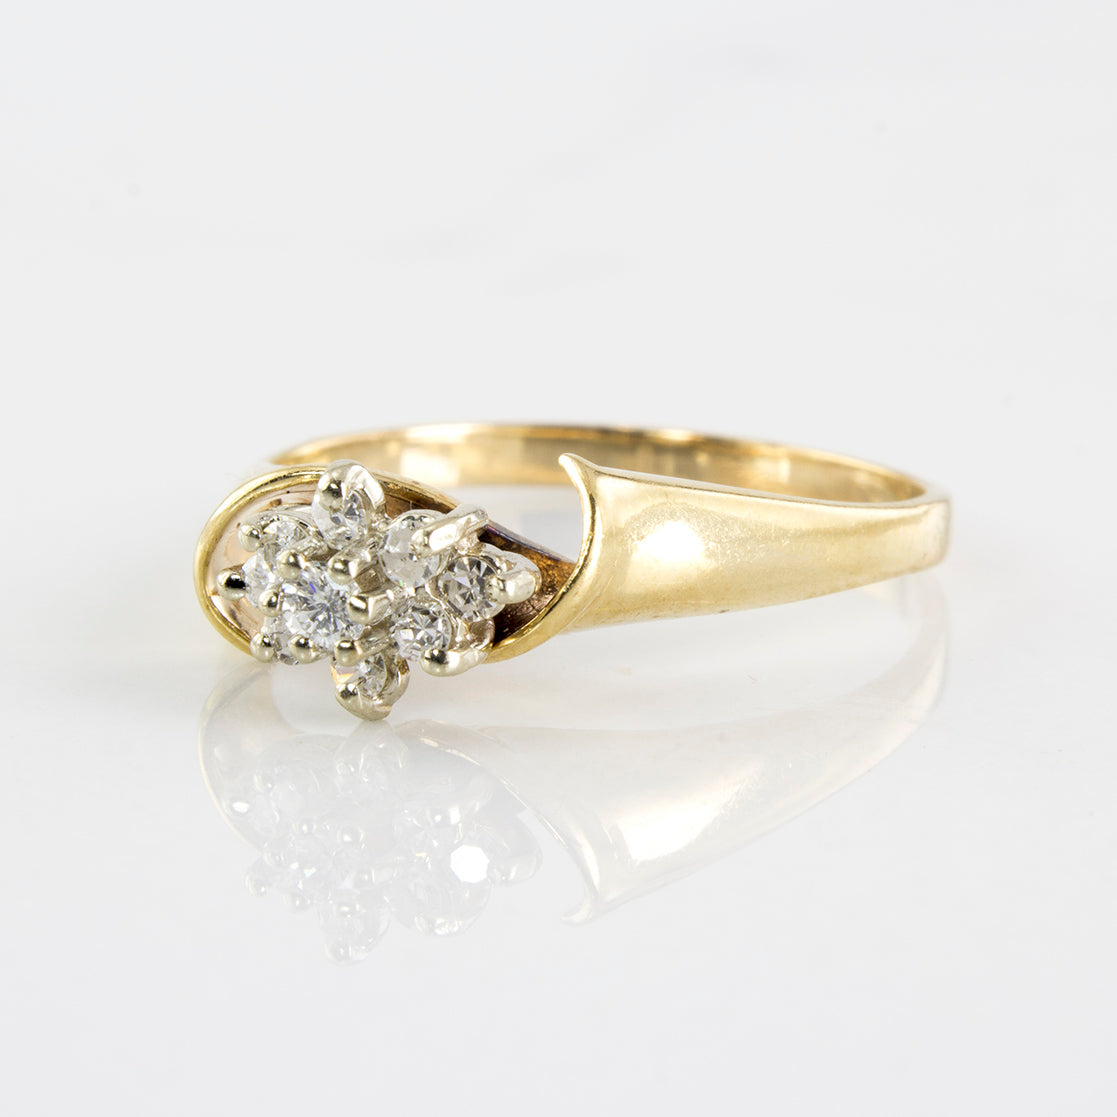 Twisted Bypass Diamond Cluster Ring | 0.15 ctw | SZ 6.25 |